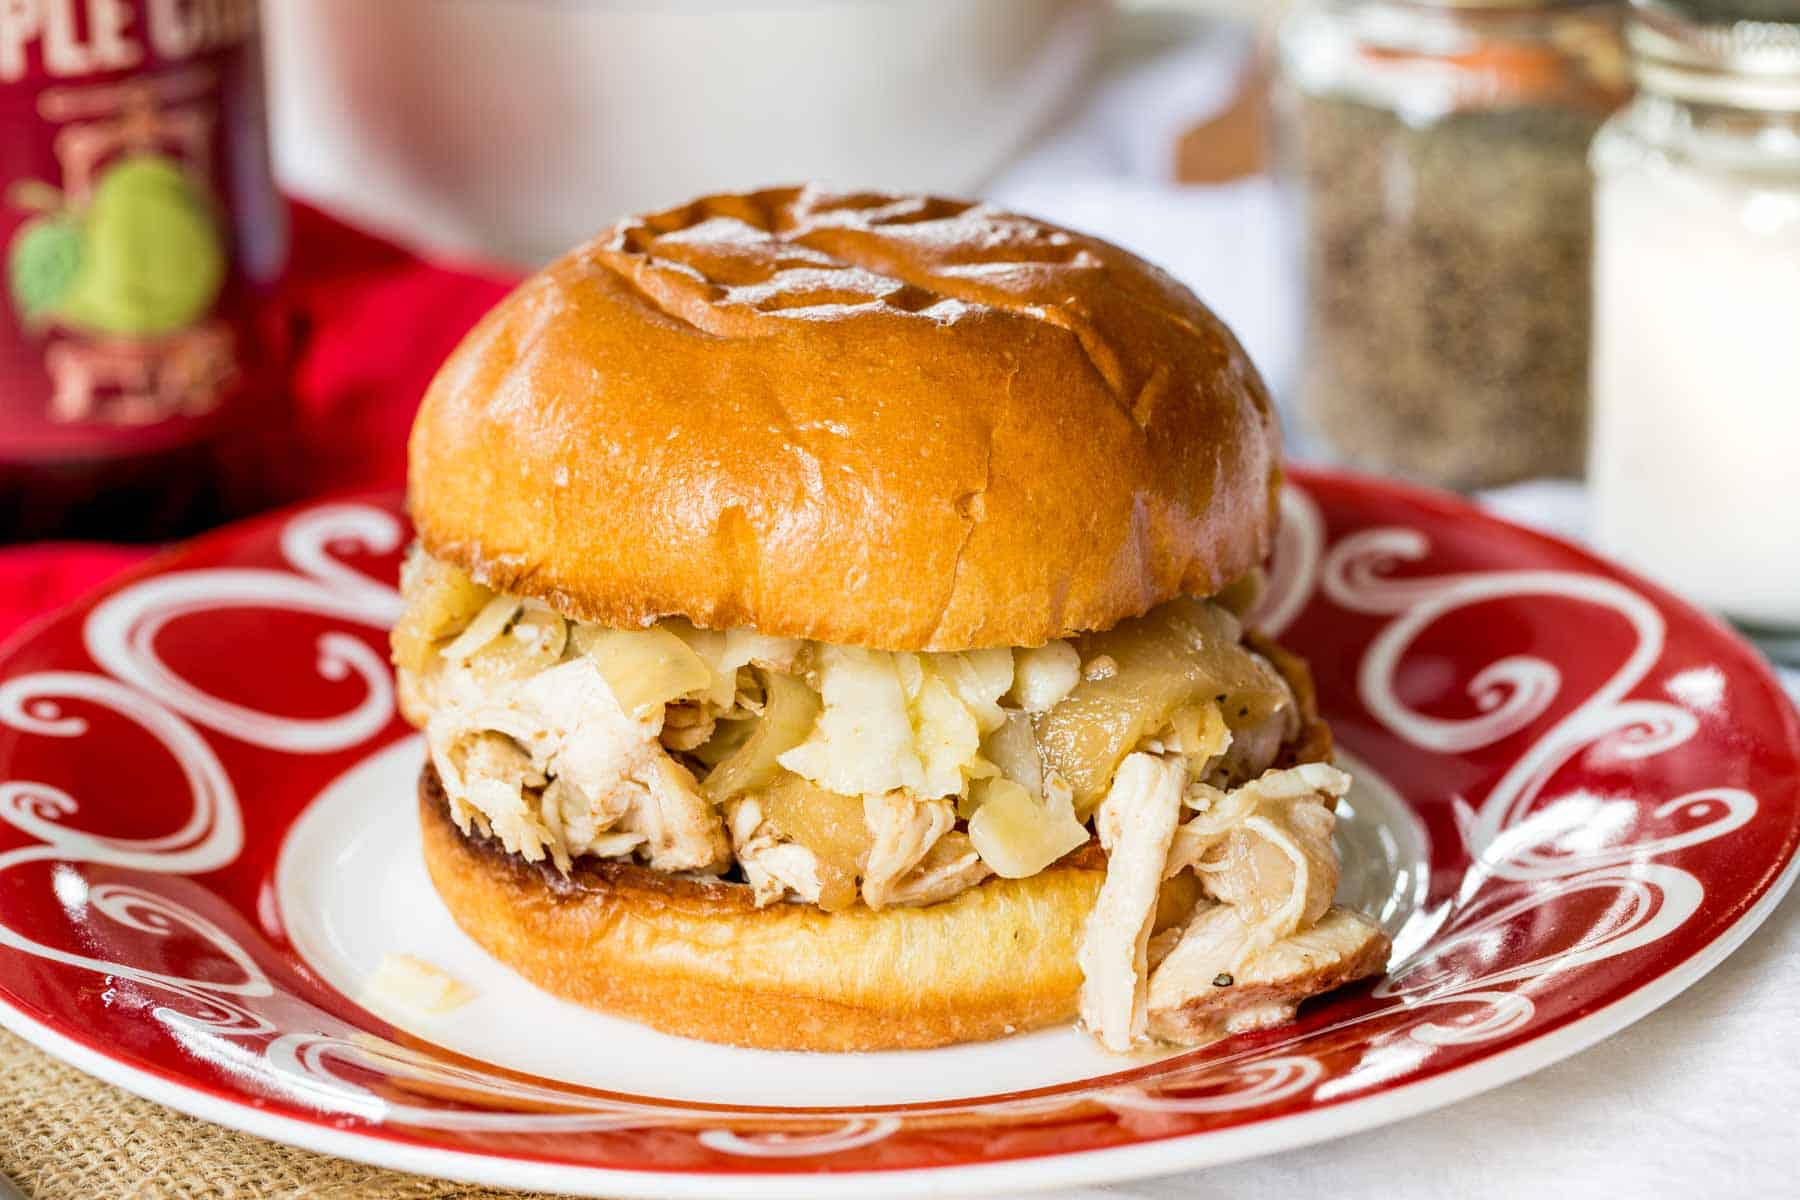 Slow Cooker Apple Cider Pulled Chicken Sandwich on a red and white plate